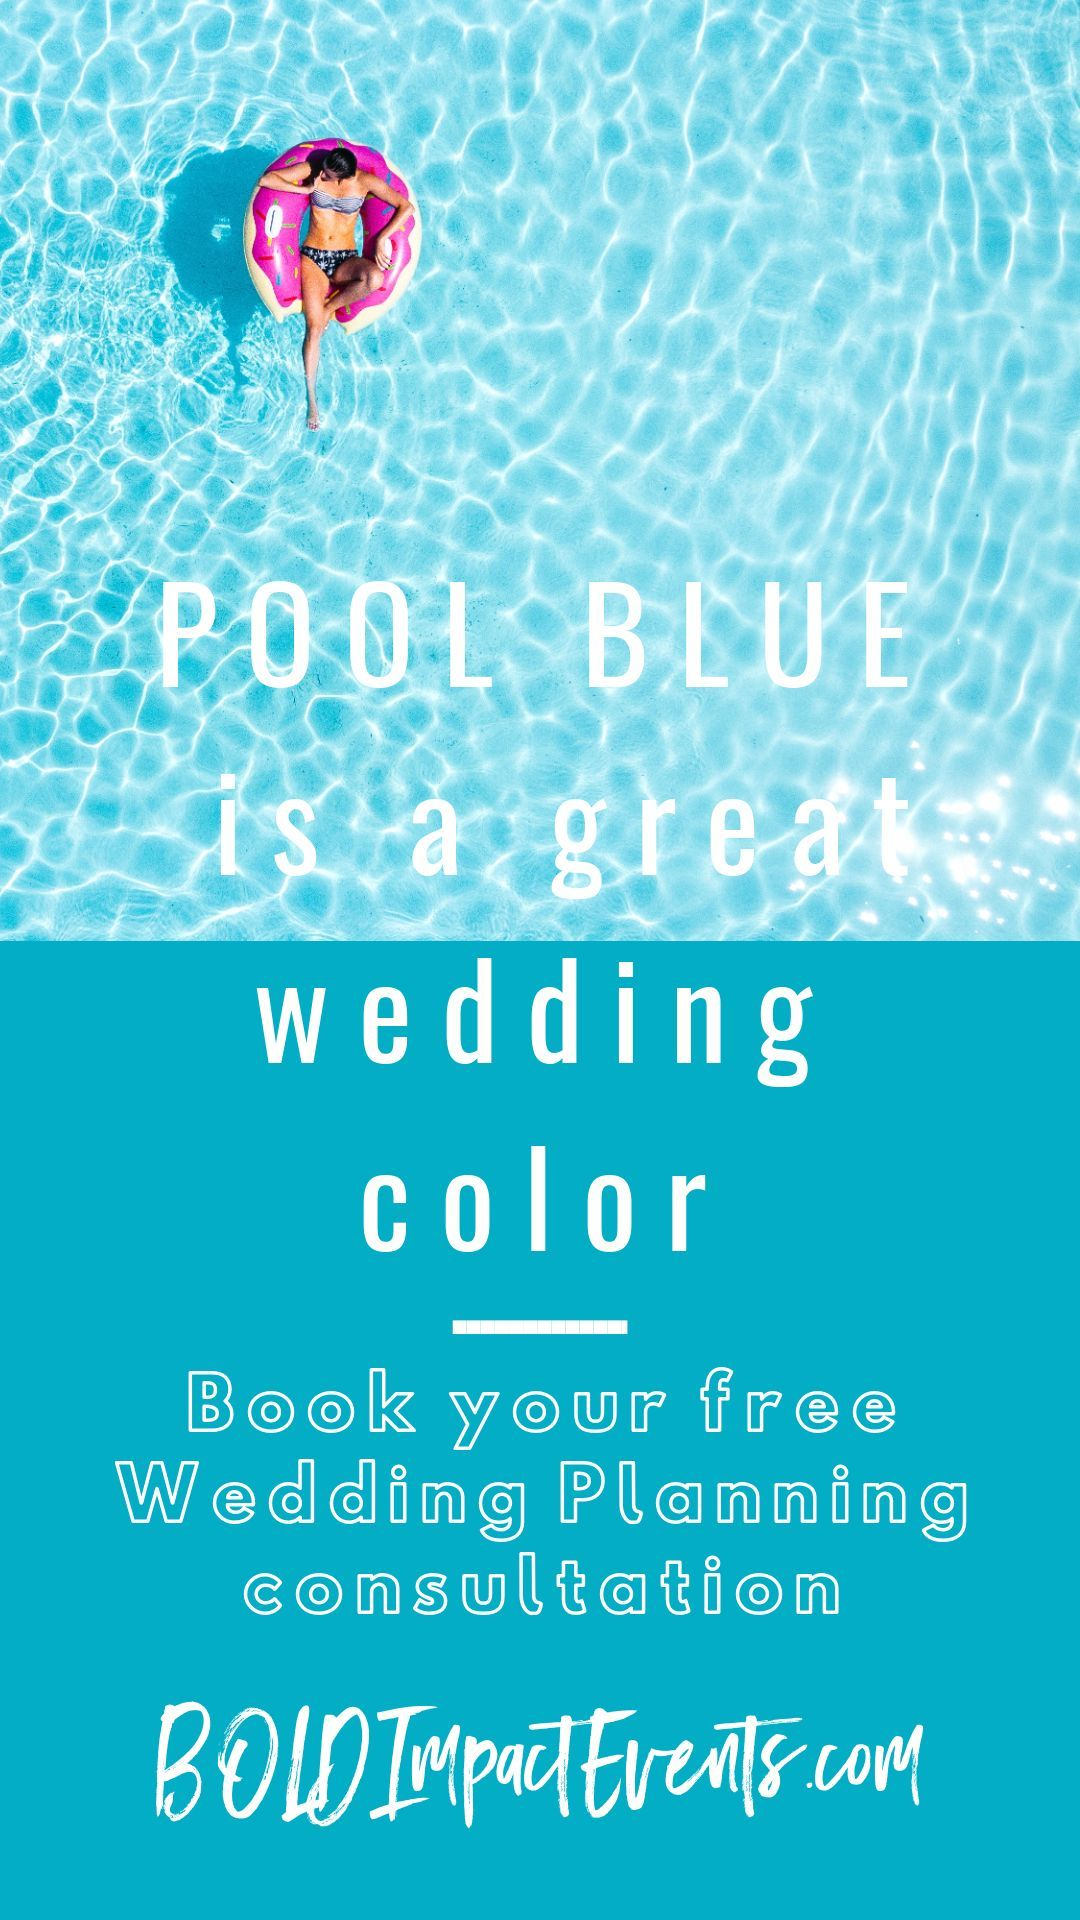 Professional Wedding Planner Palm Beach Fl In 2020 With Images